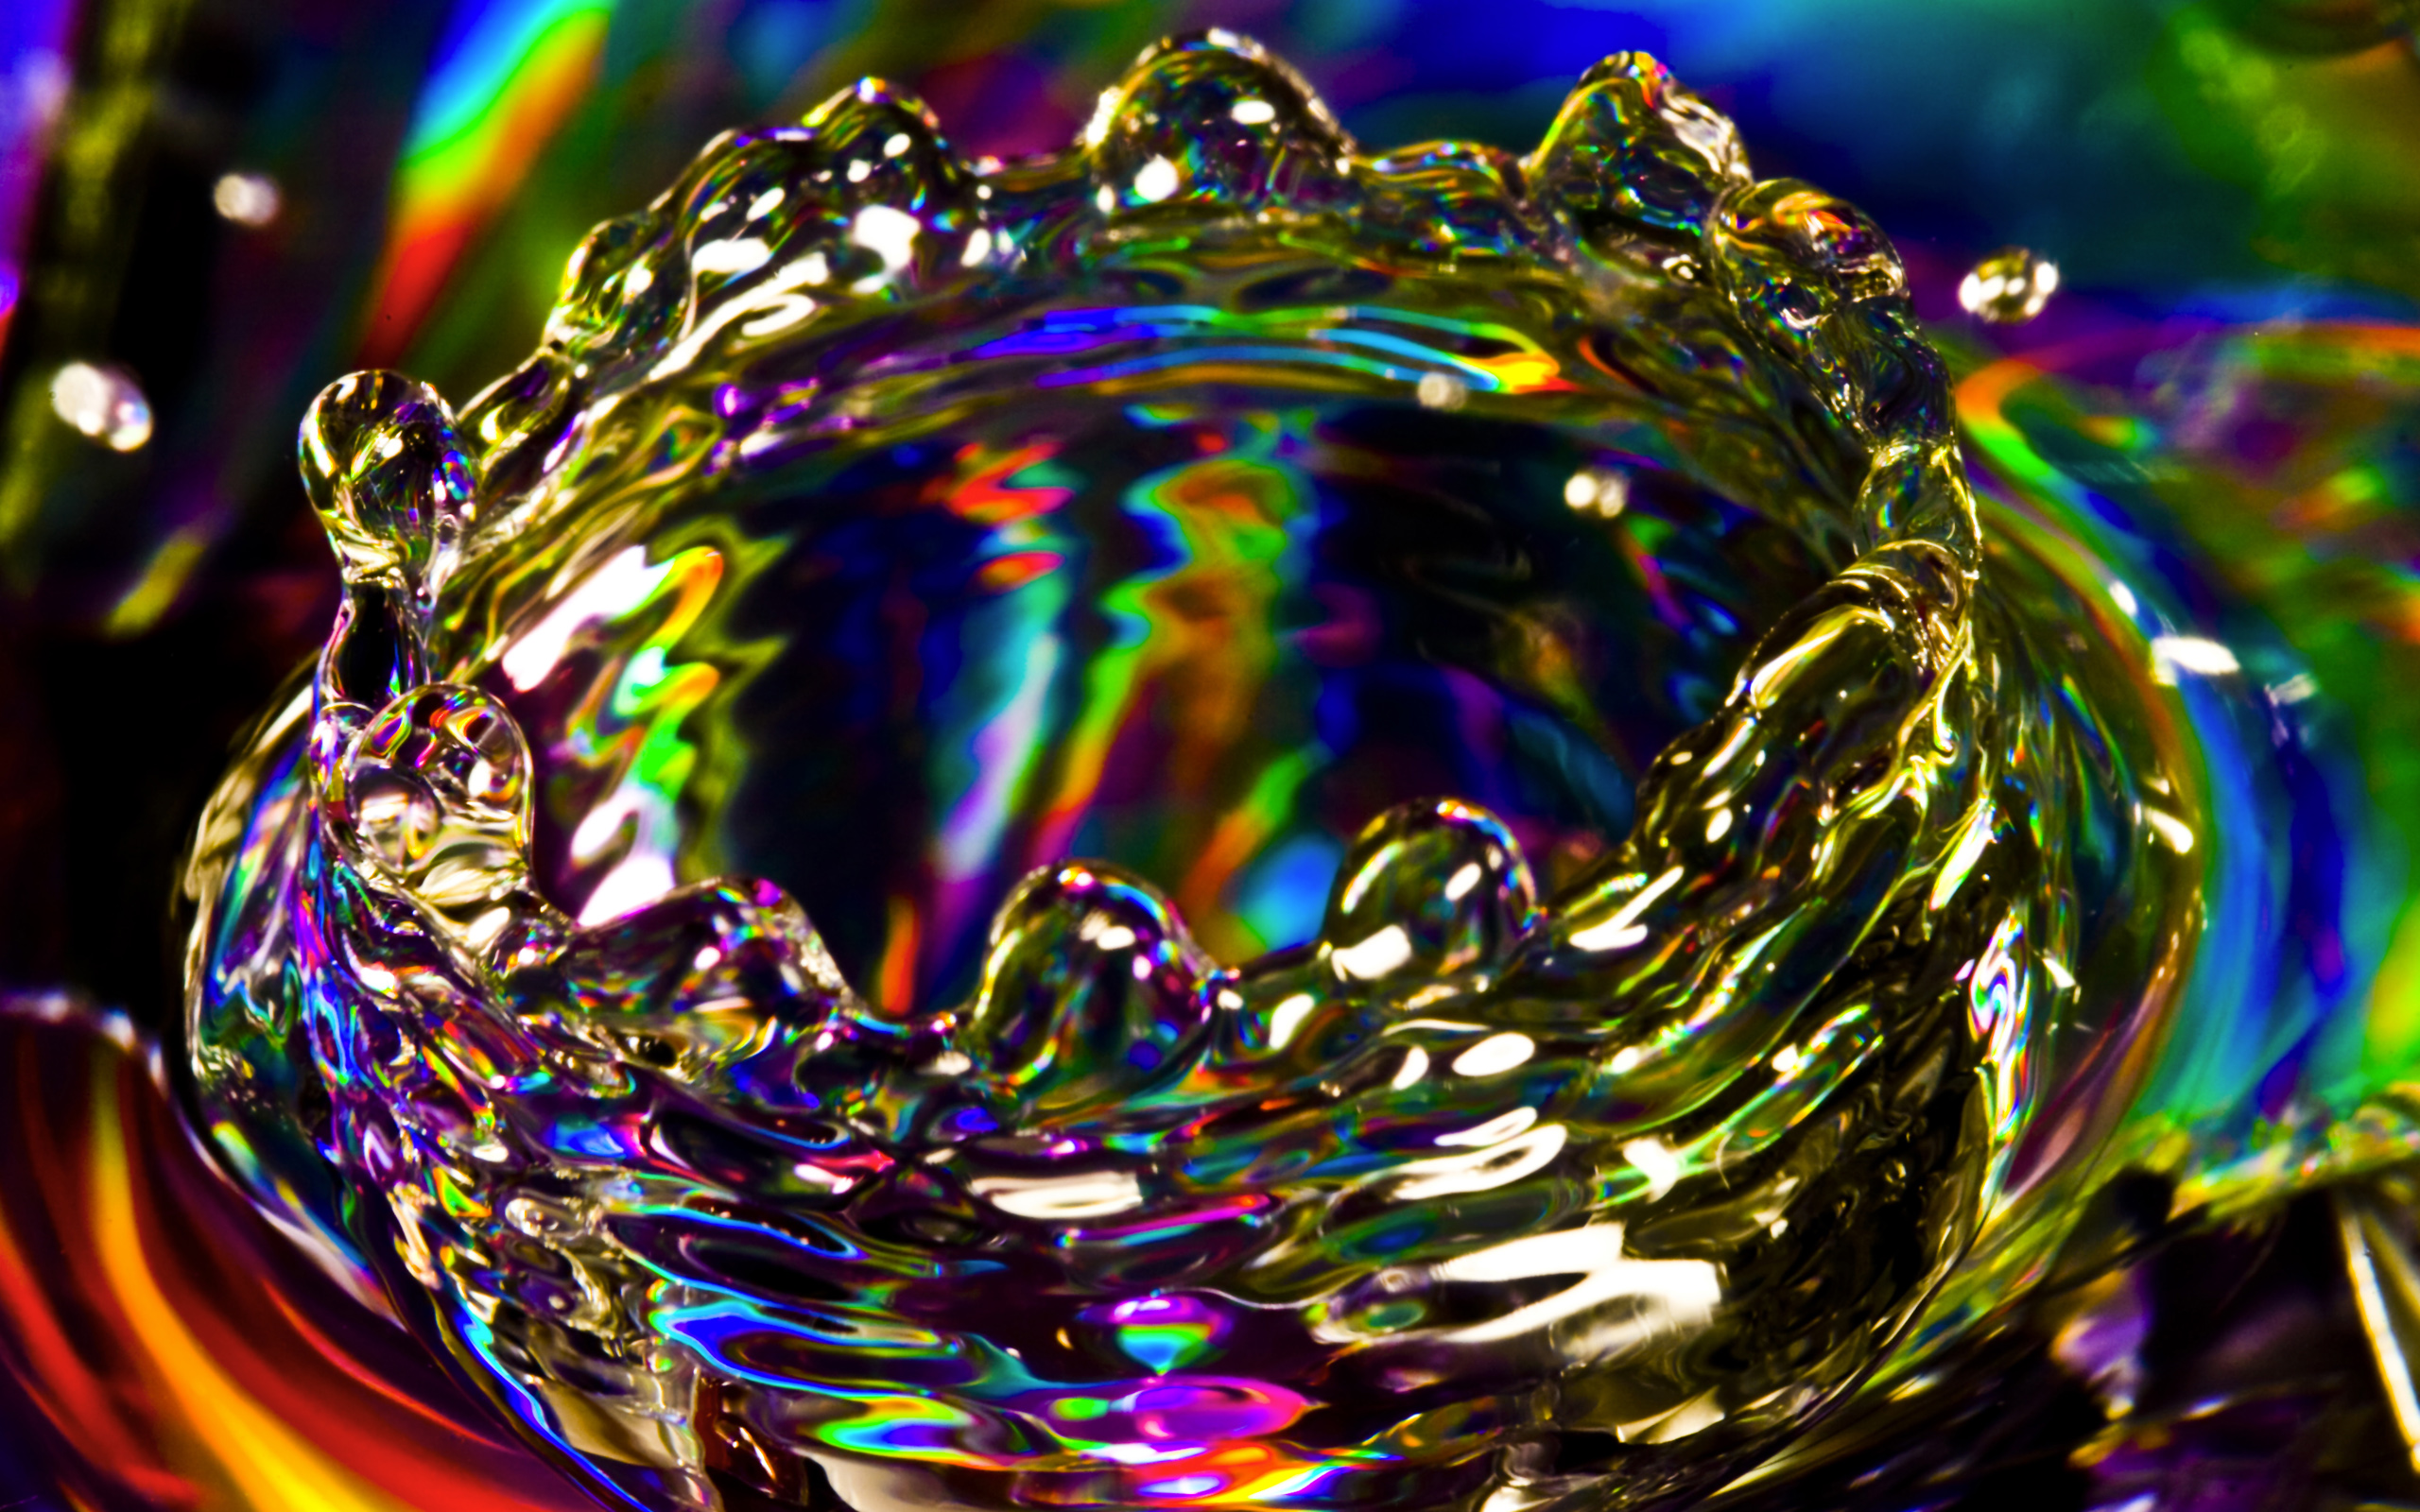 Colorful Splash Full HD Wallpaper And Background Image